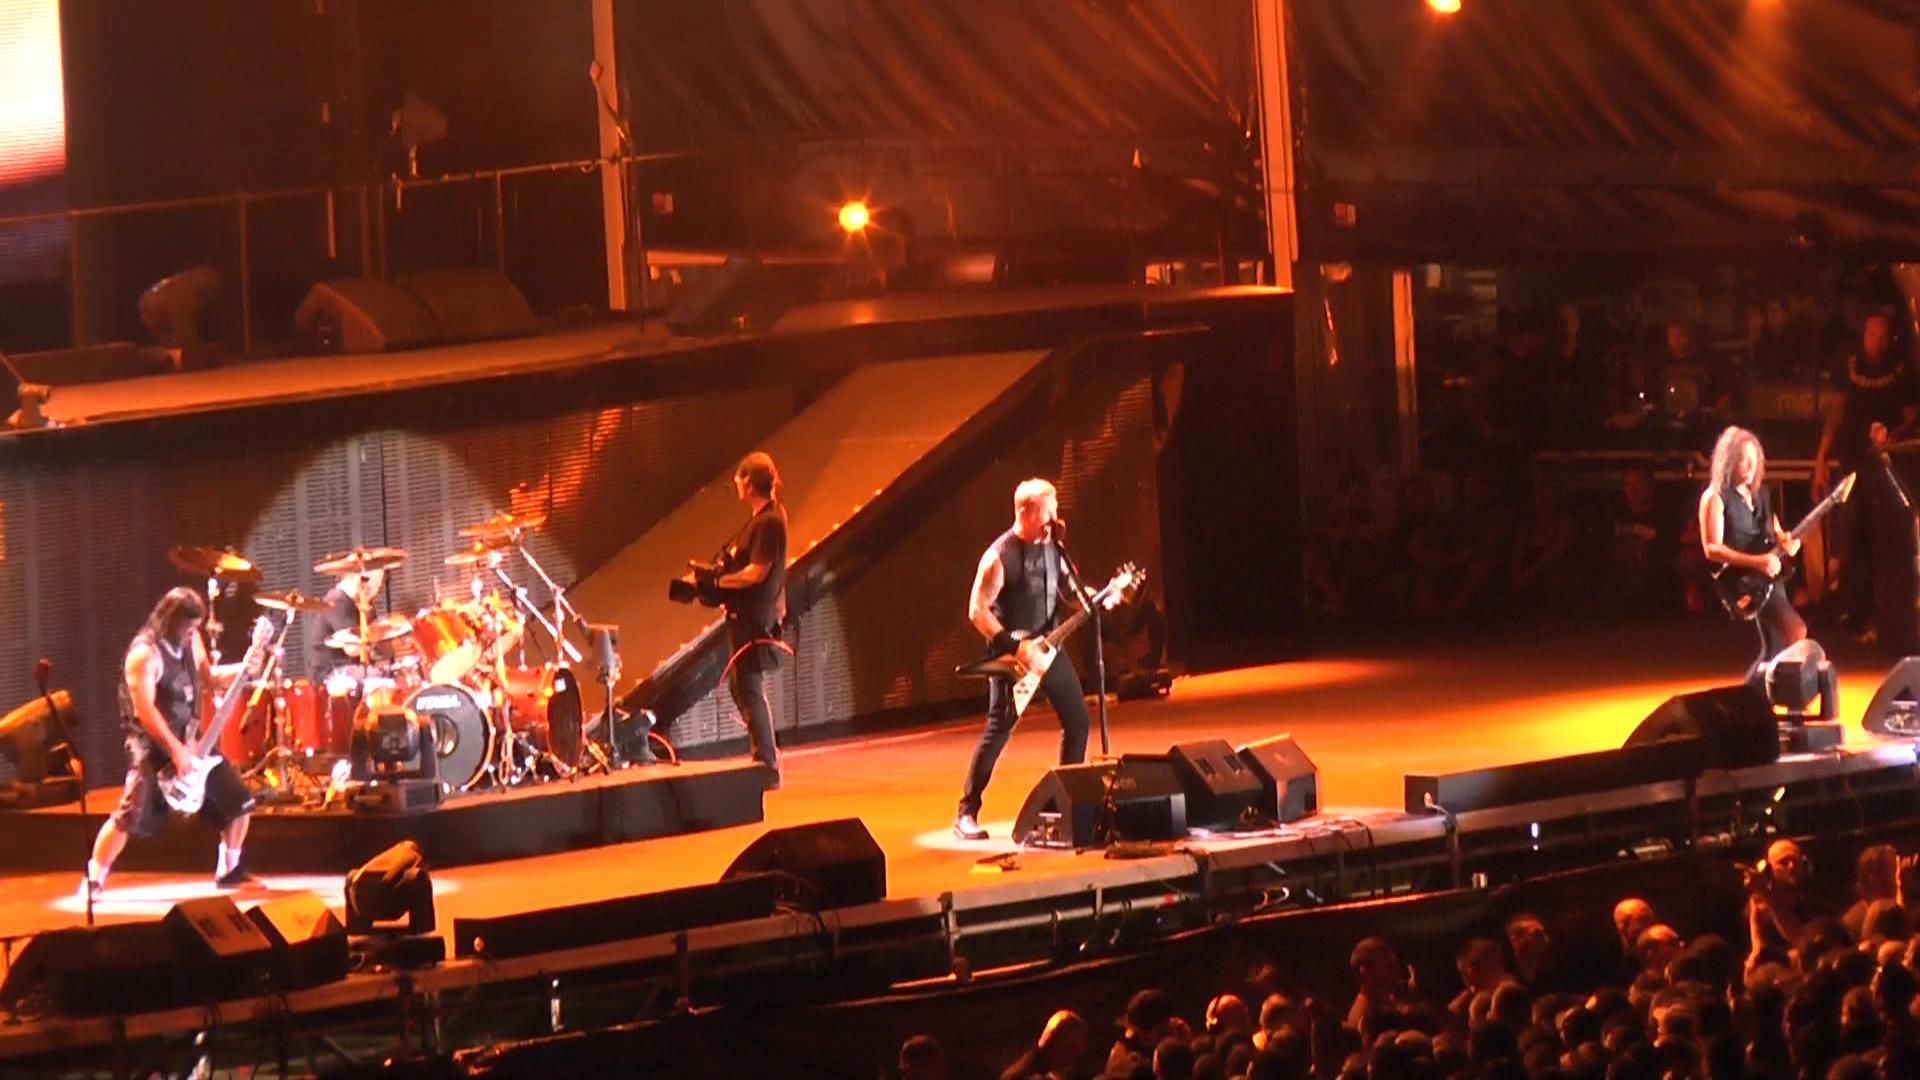 metallica_2013-02-24_sydneyaustralia_screen_61378223635